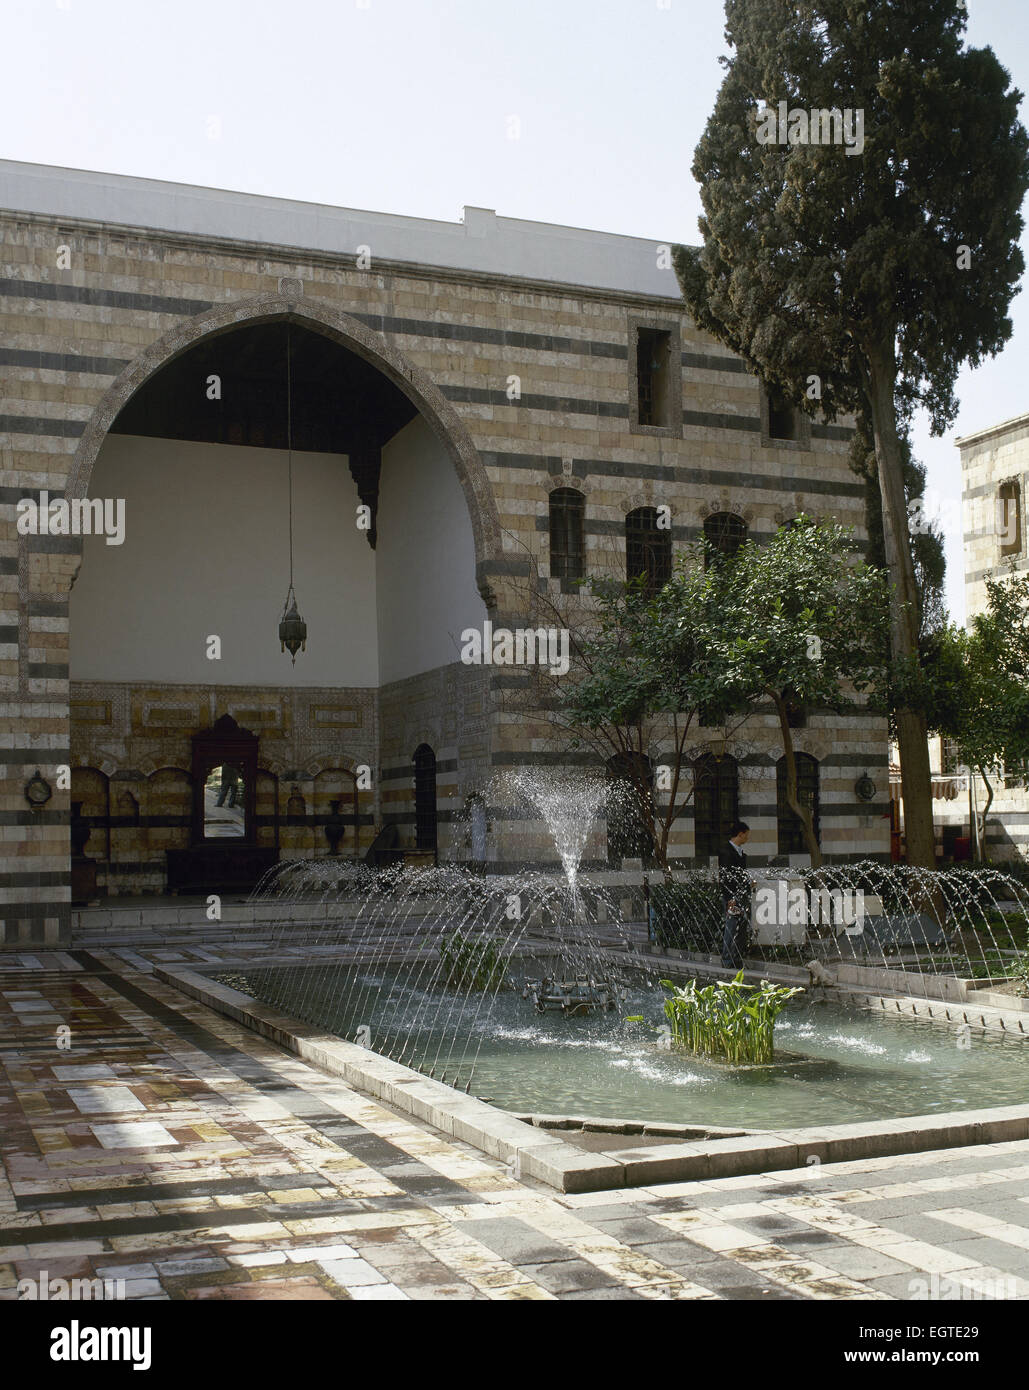 Syria. Damascus. Al Azem Palace (Palace of As'as, Pasha al-'Azm). 1749-1752. Built on order of the Ottoman - Stock Image